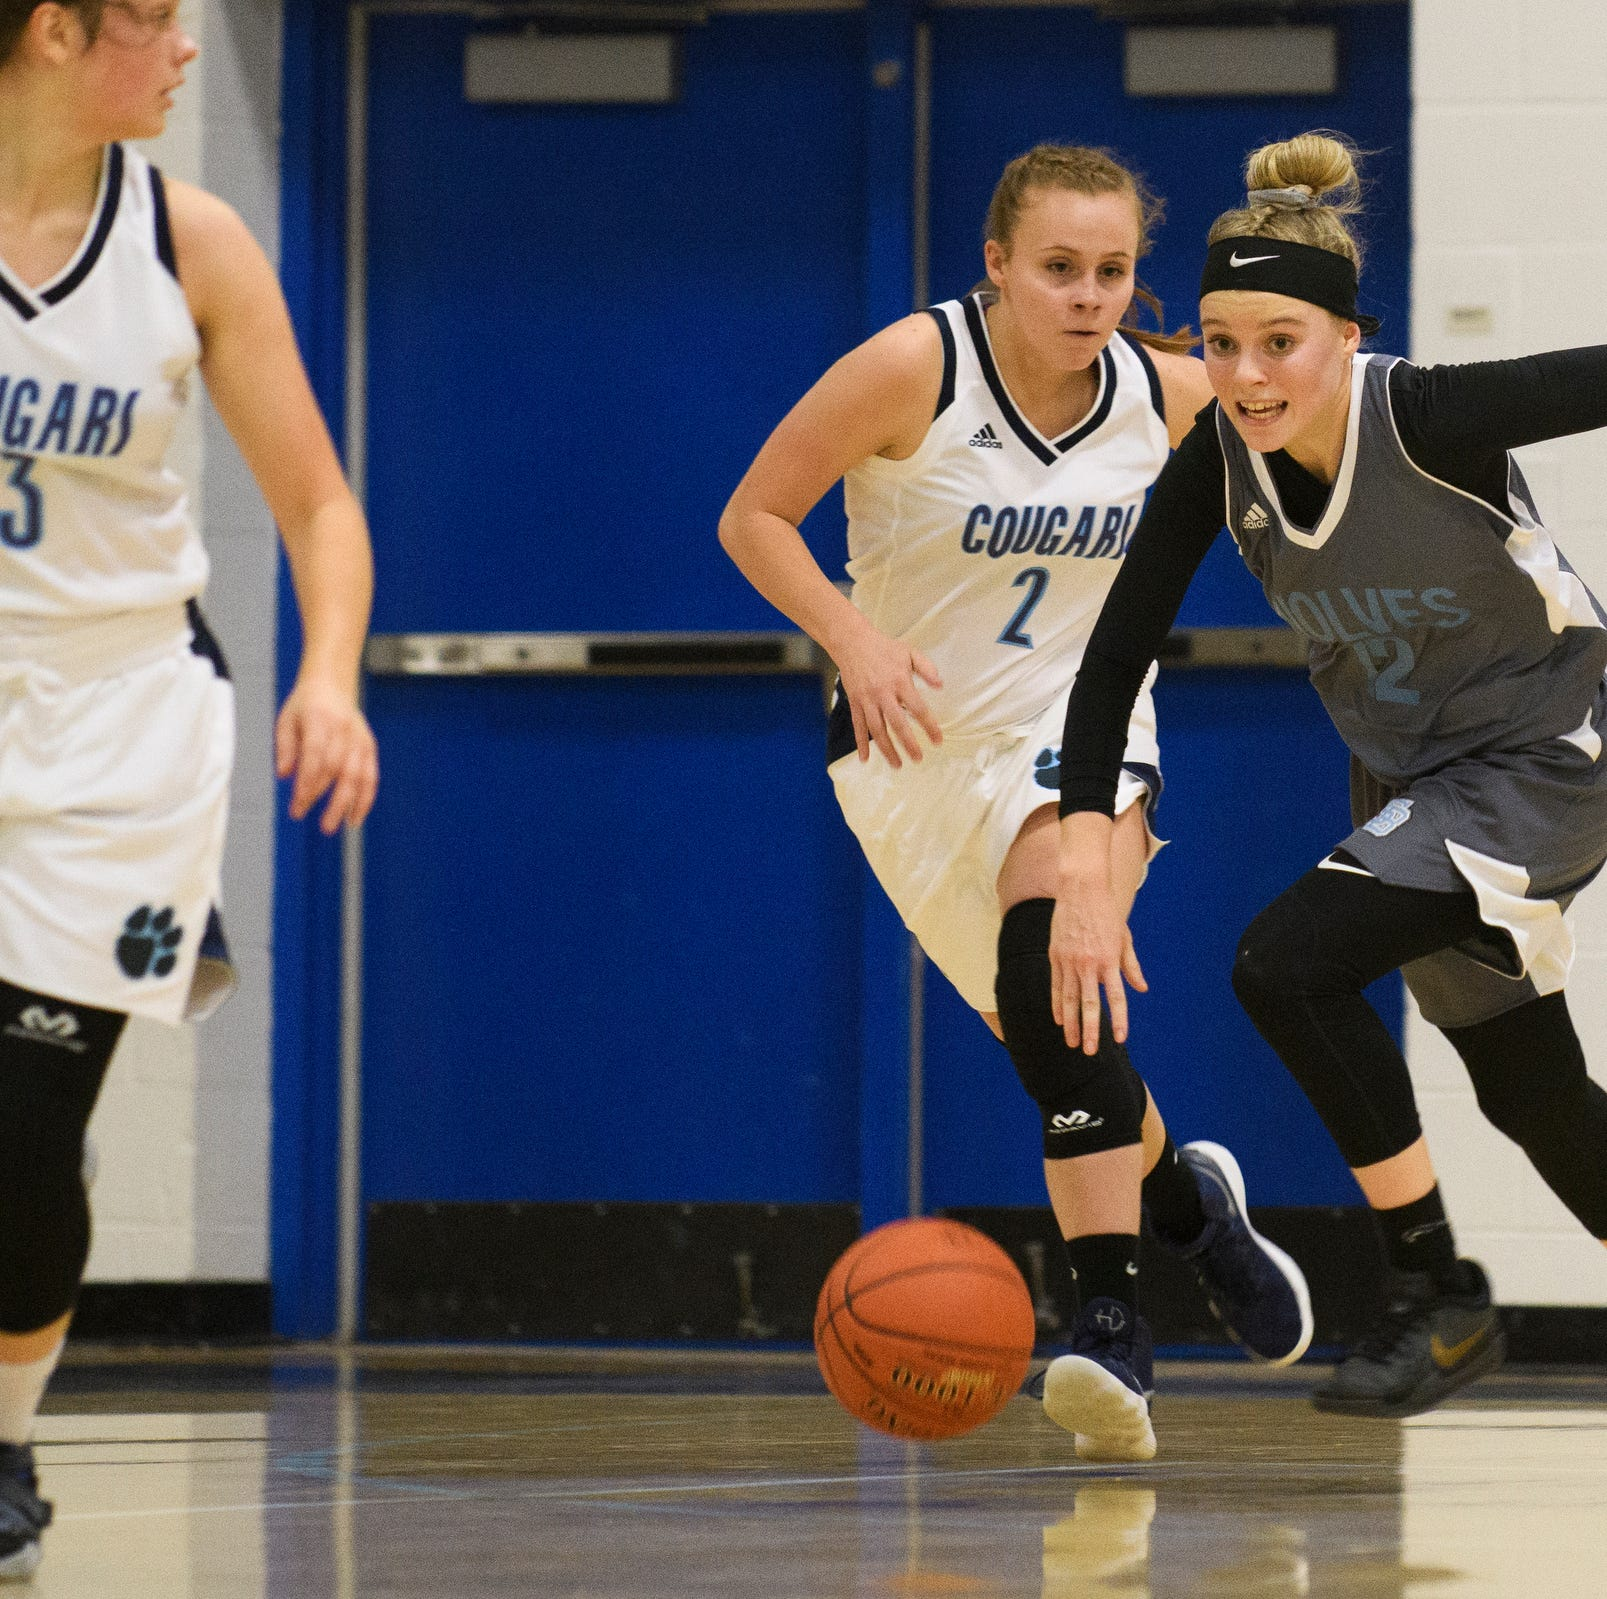 Friday's highlights: South Burlington girls basketball rallies past MMU